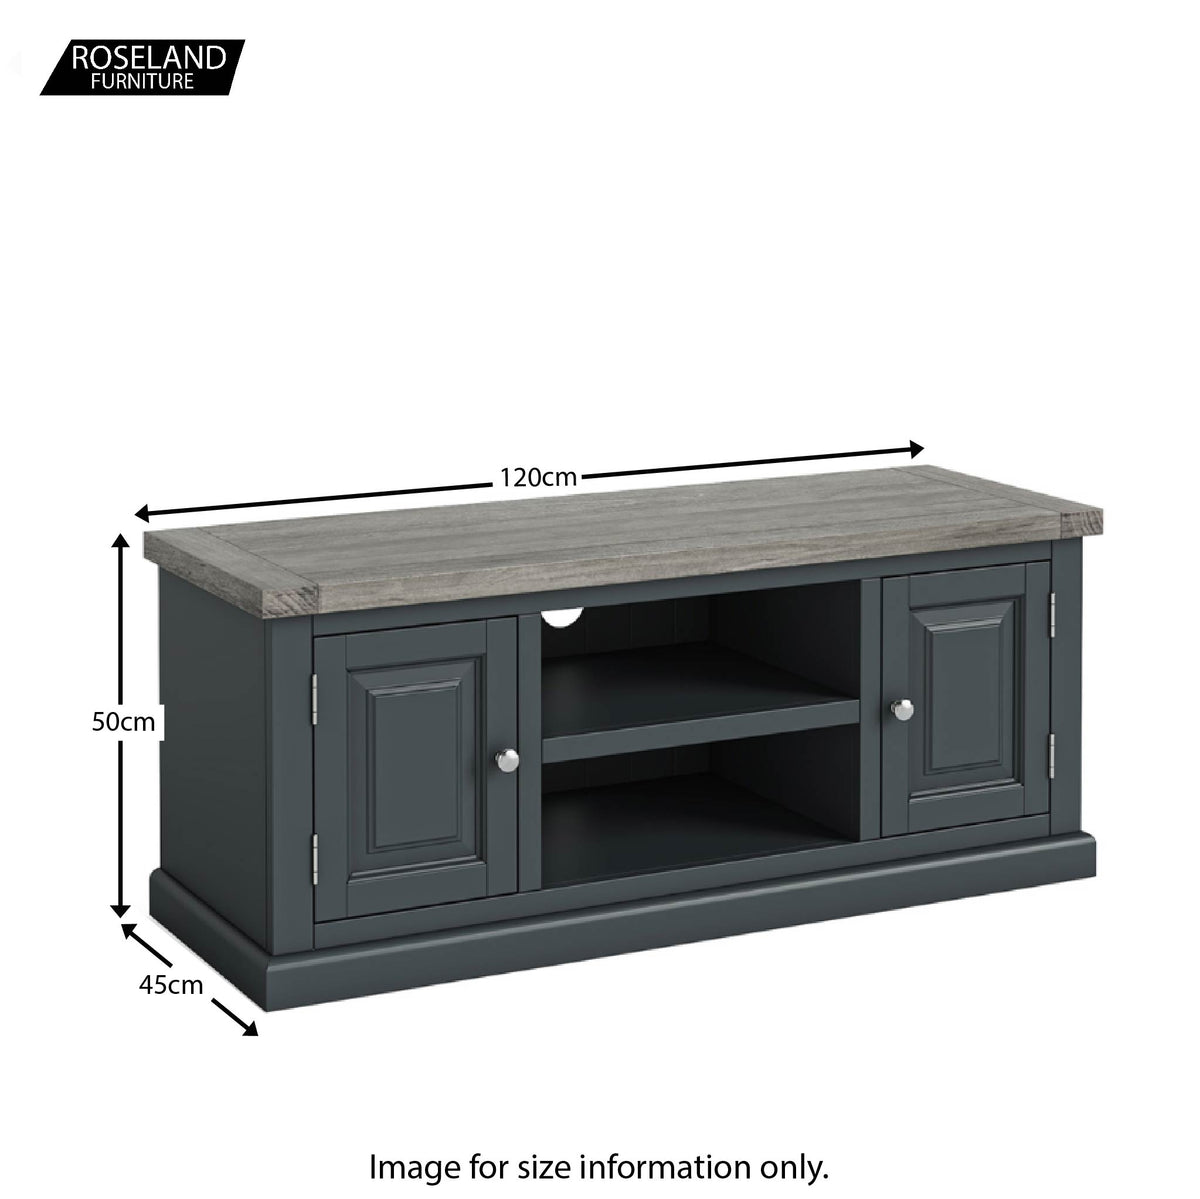 Dimensions - Bristol Charcoal 120cm Large TV Stand